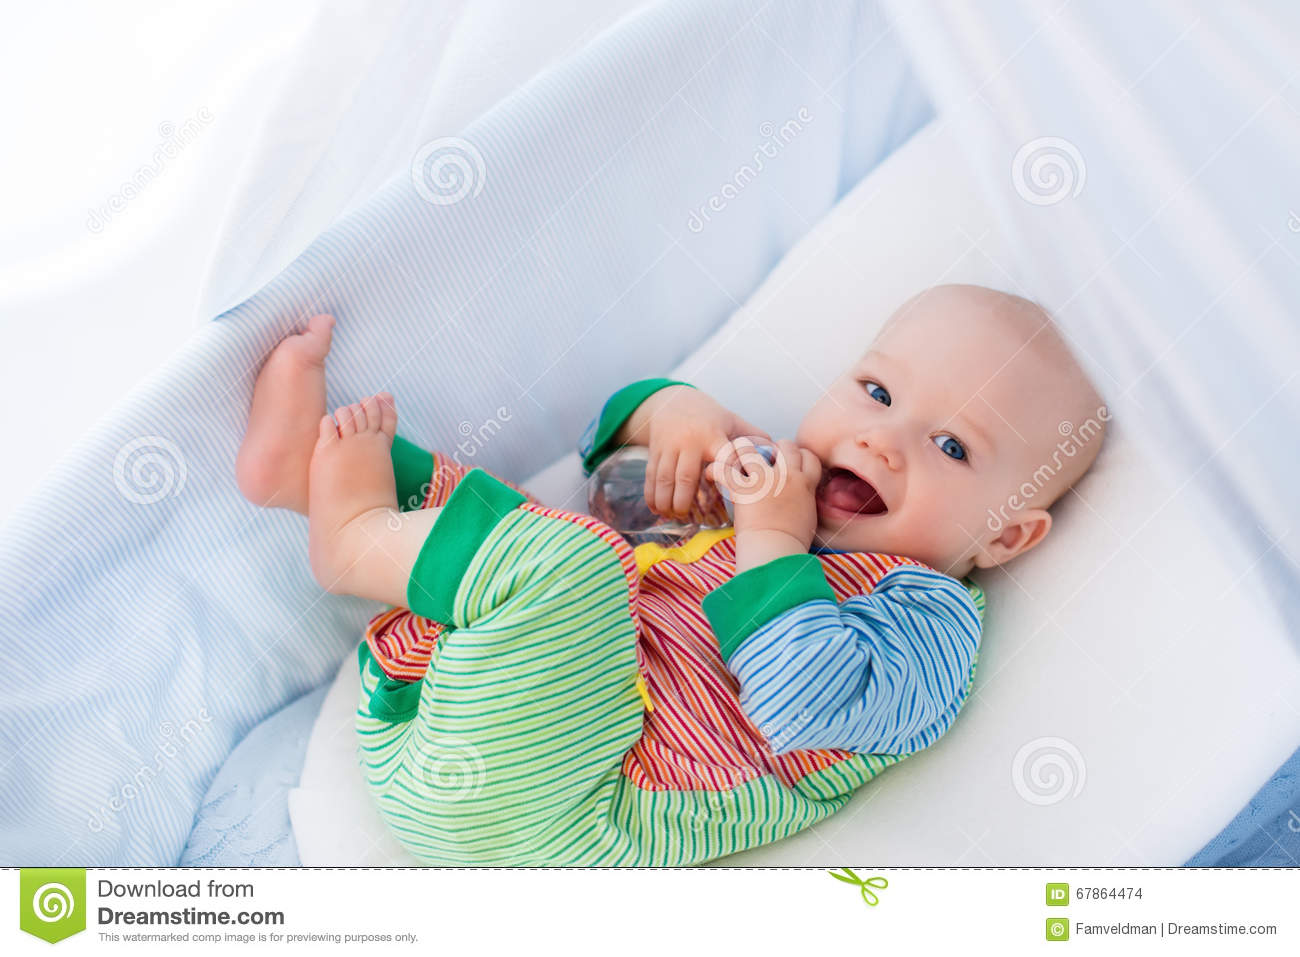 89f90f162f Funny baby in colorful pajamas with bottle drinking water or milk in white  crib with canopy. Healthy nutrition for kids. Nursery interior and bedding  for ...